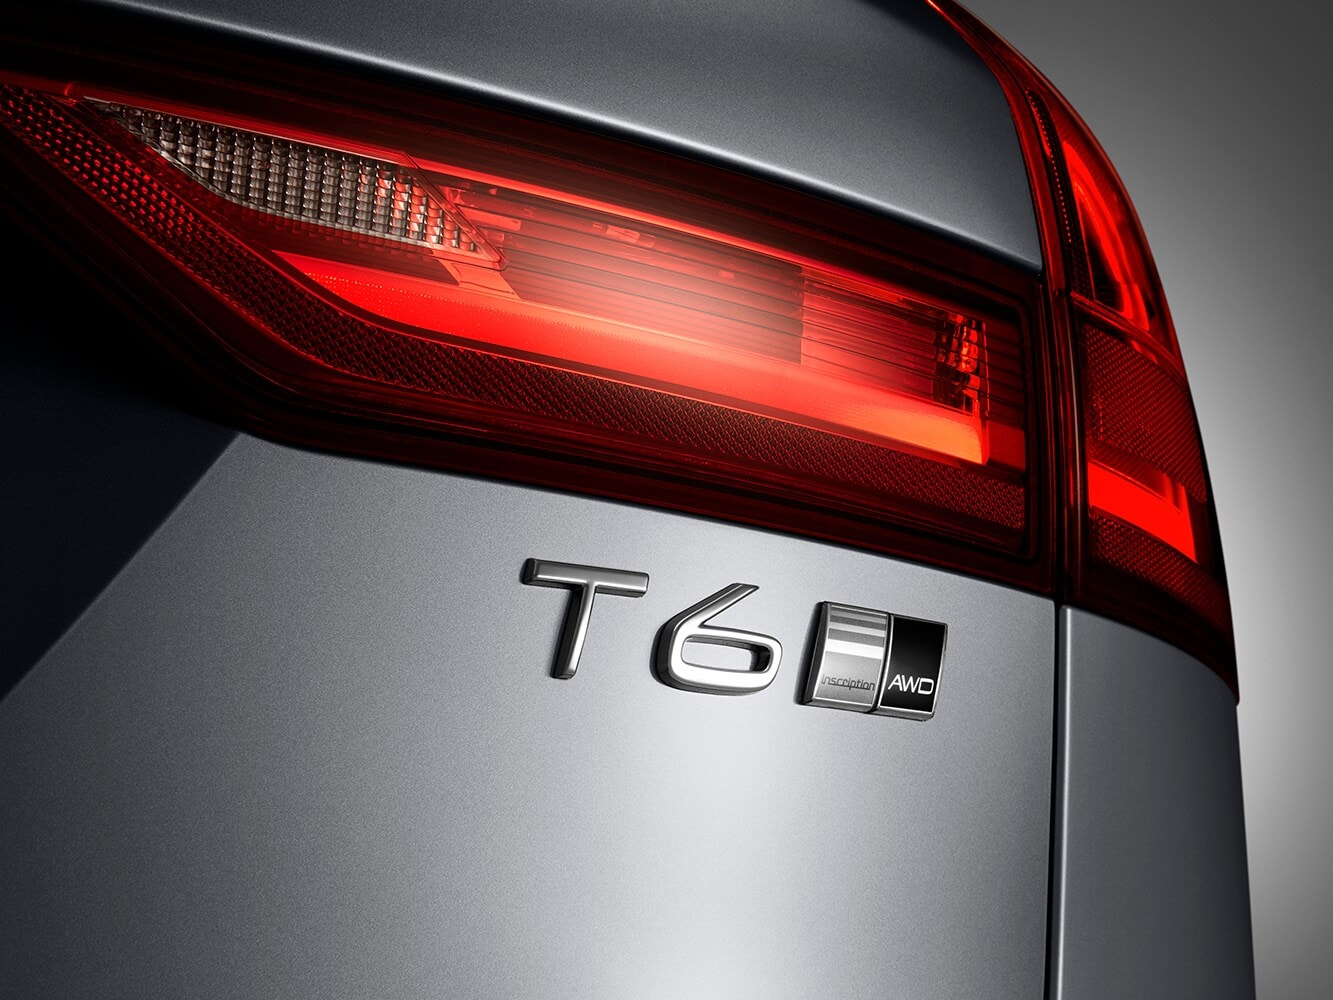 Close up of the T6 badge on the Volvo V90